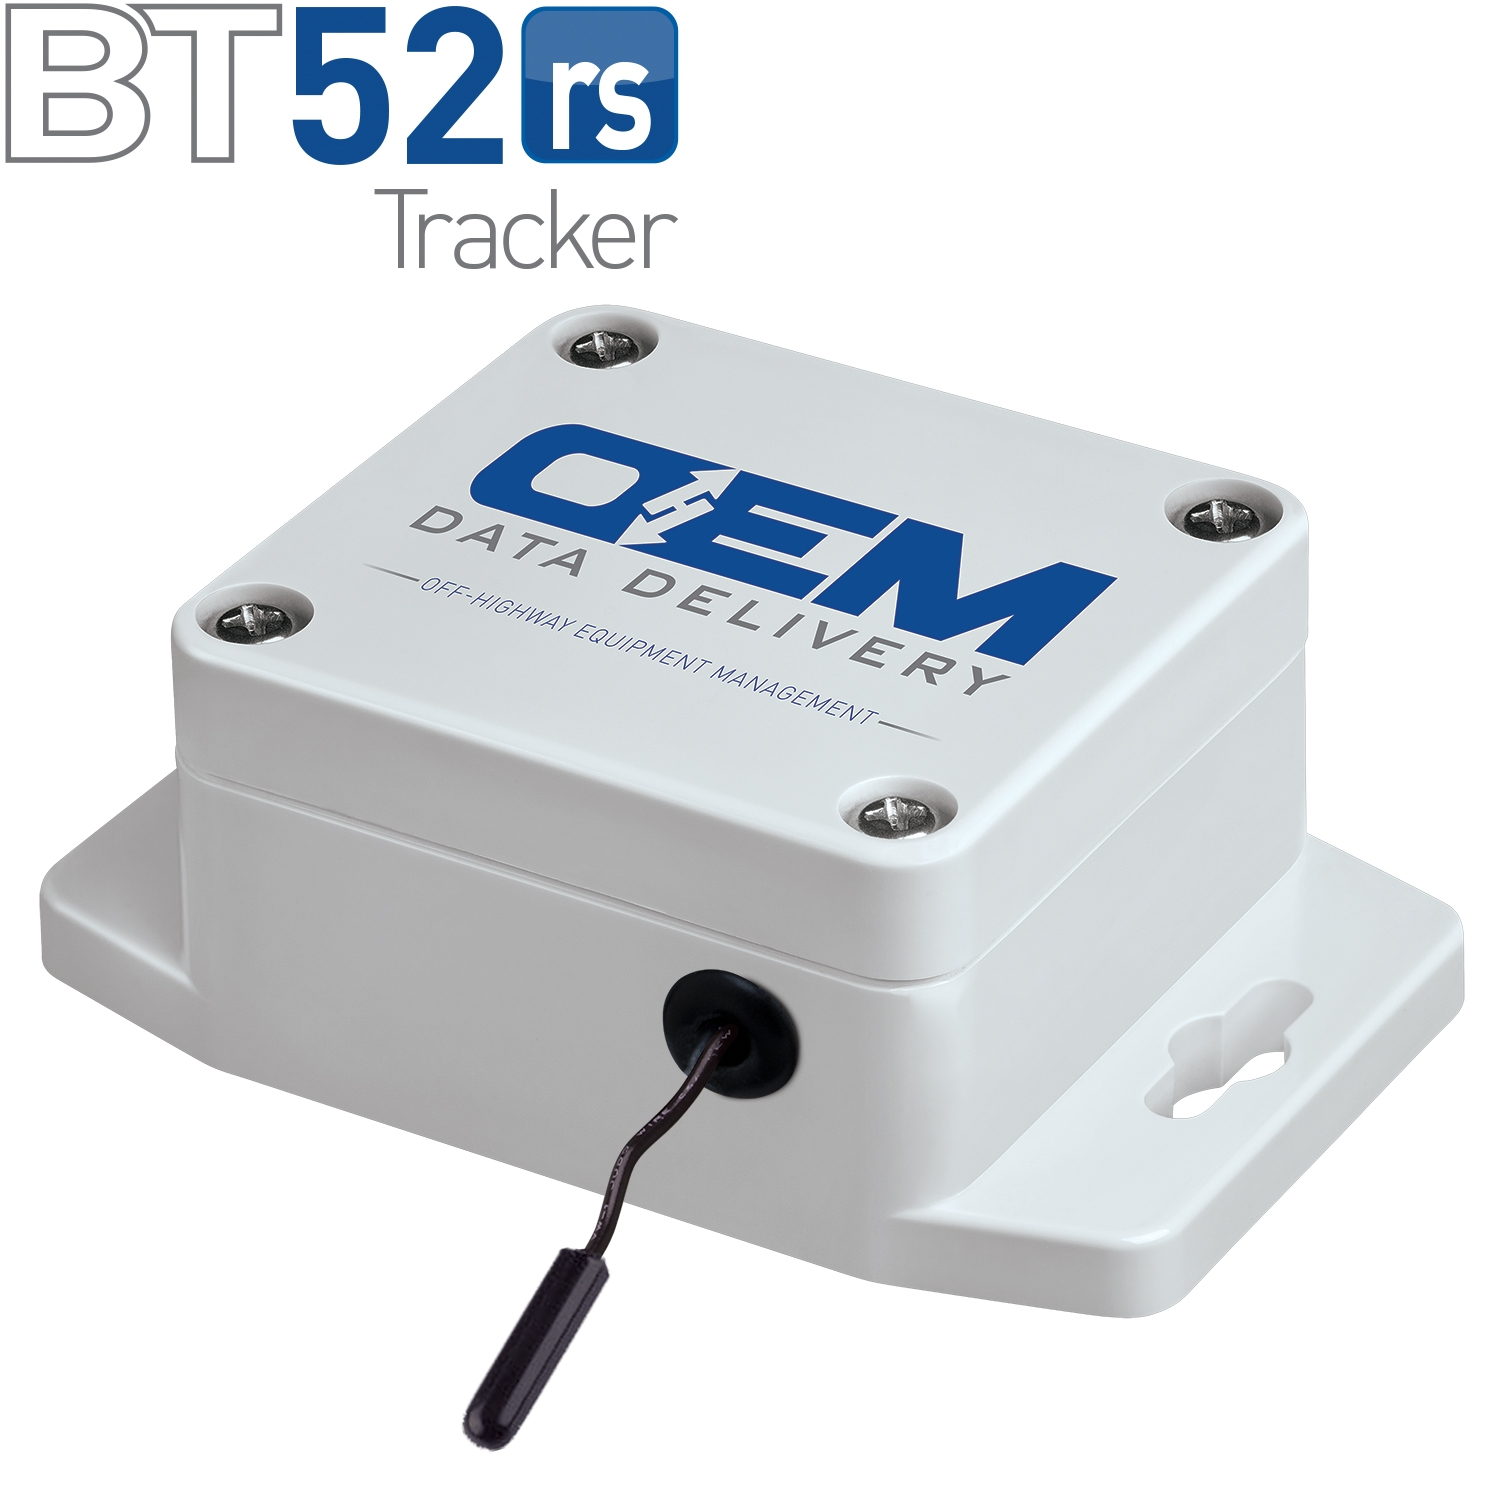 BT52rs Tracker with Logo